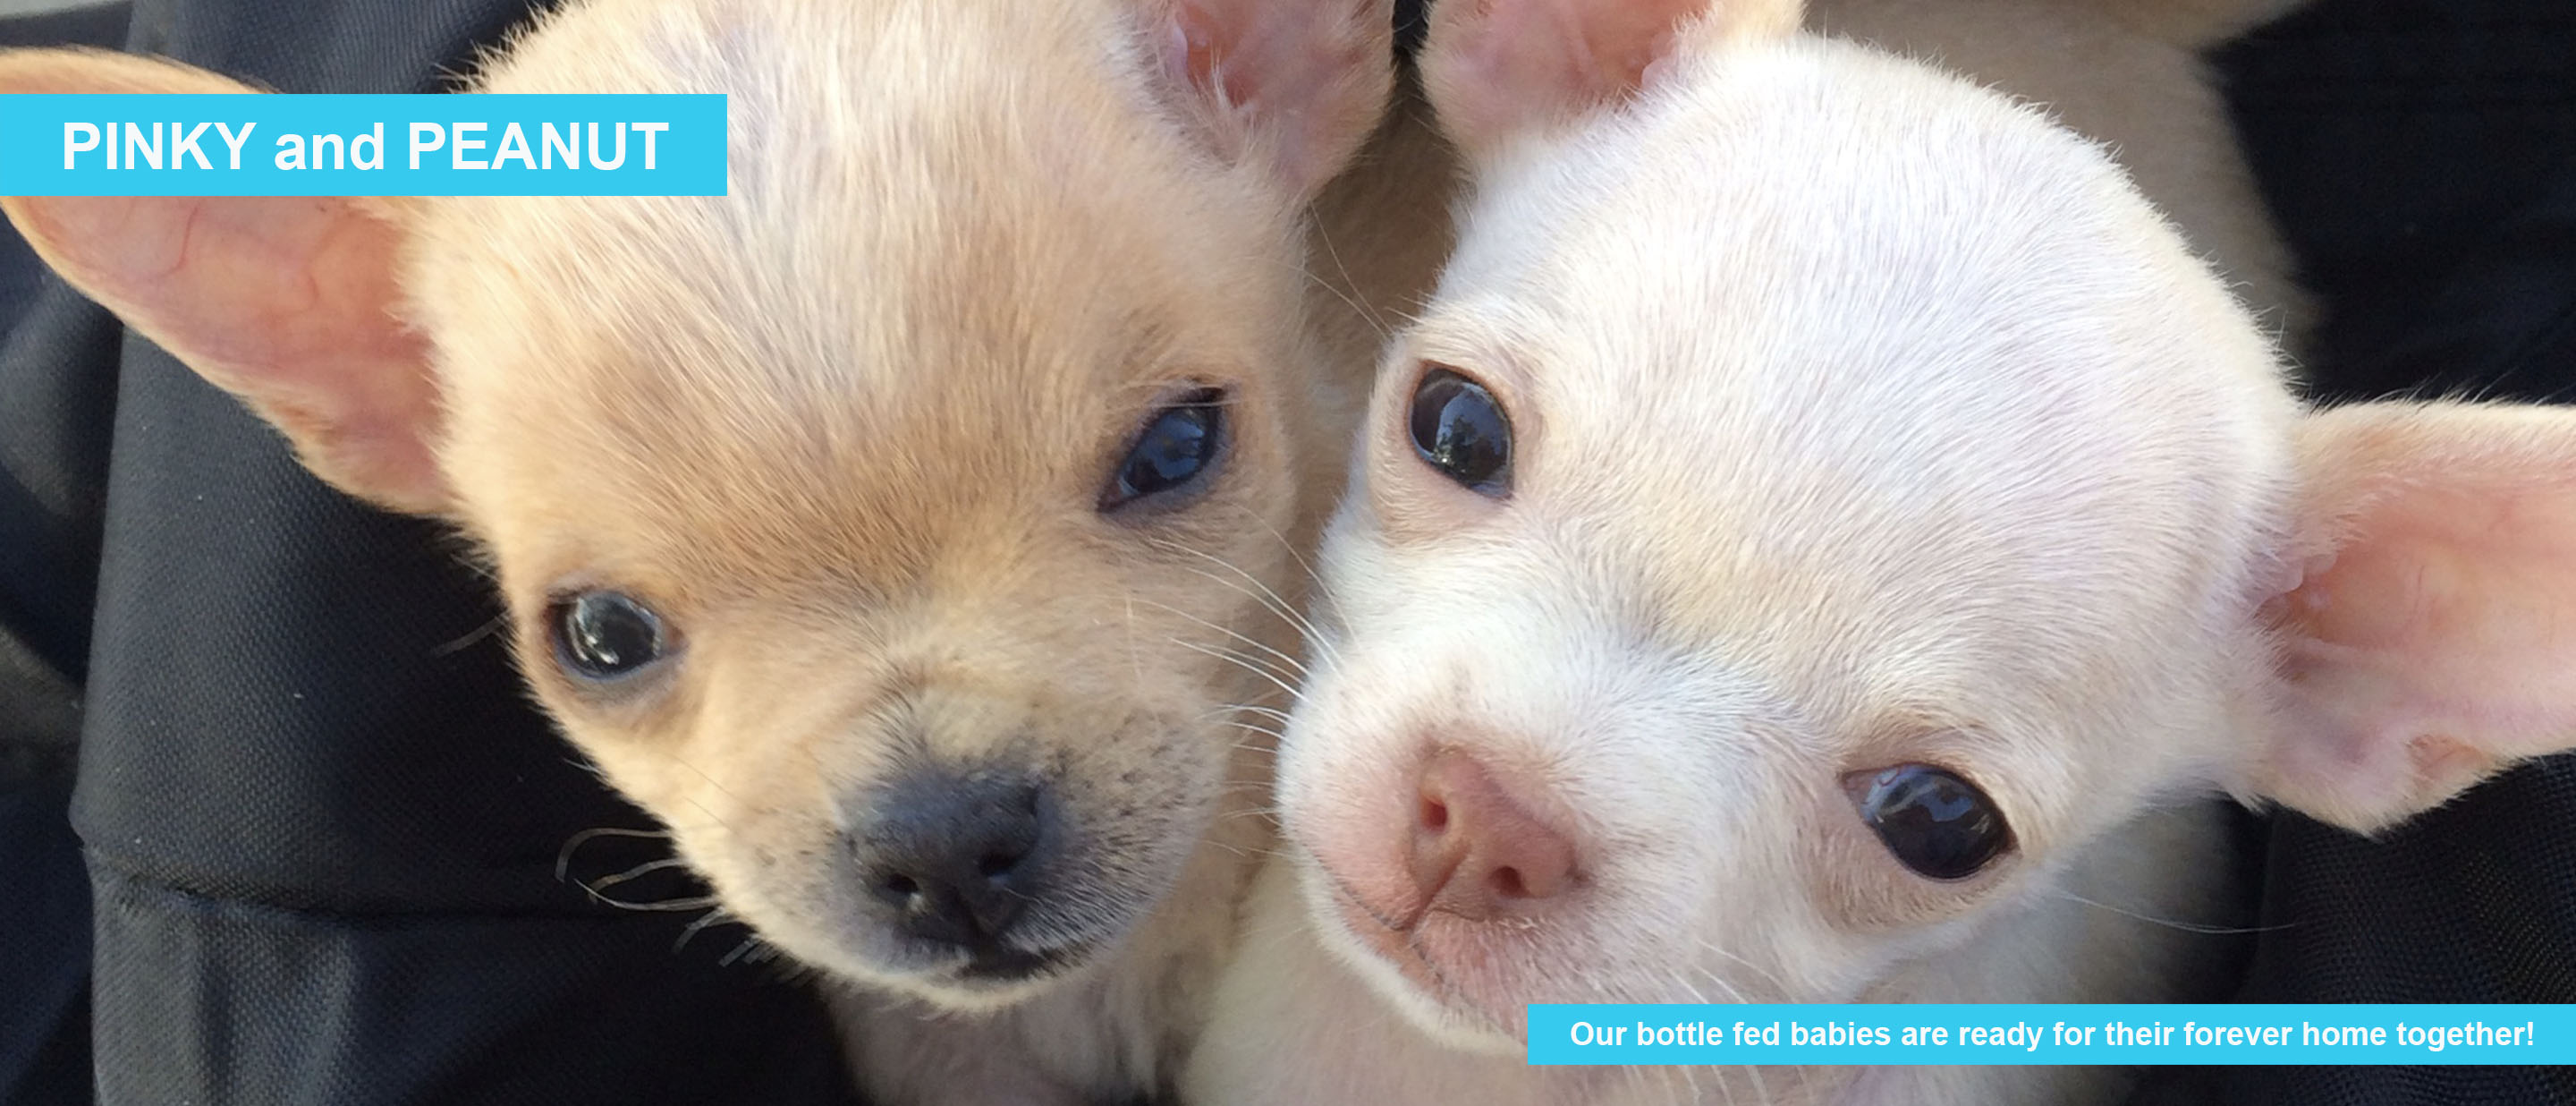 Pinky and Peanut — Ready for their forever home together!